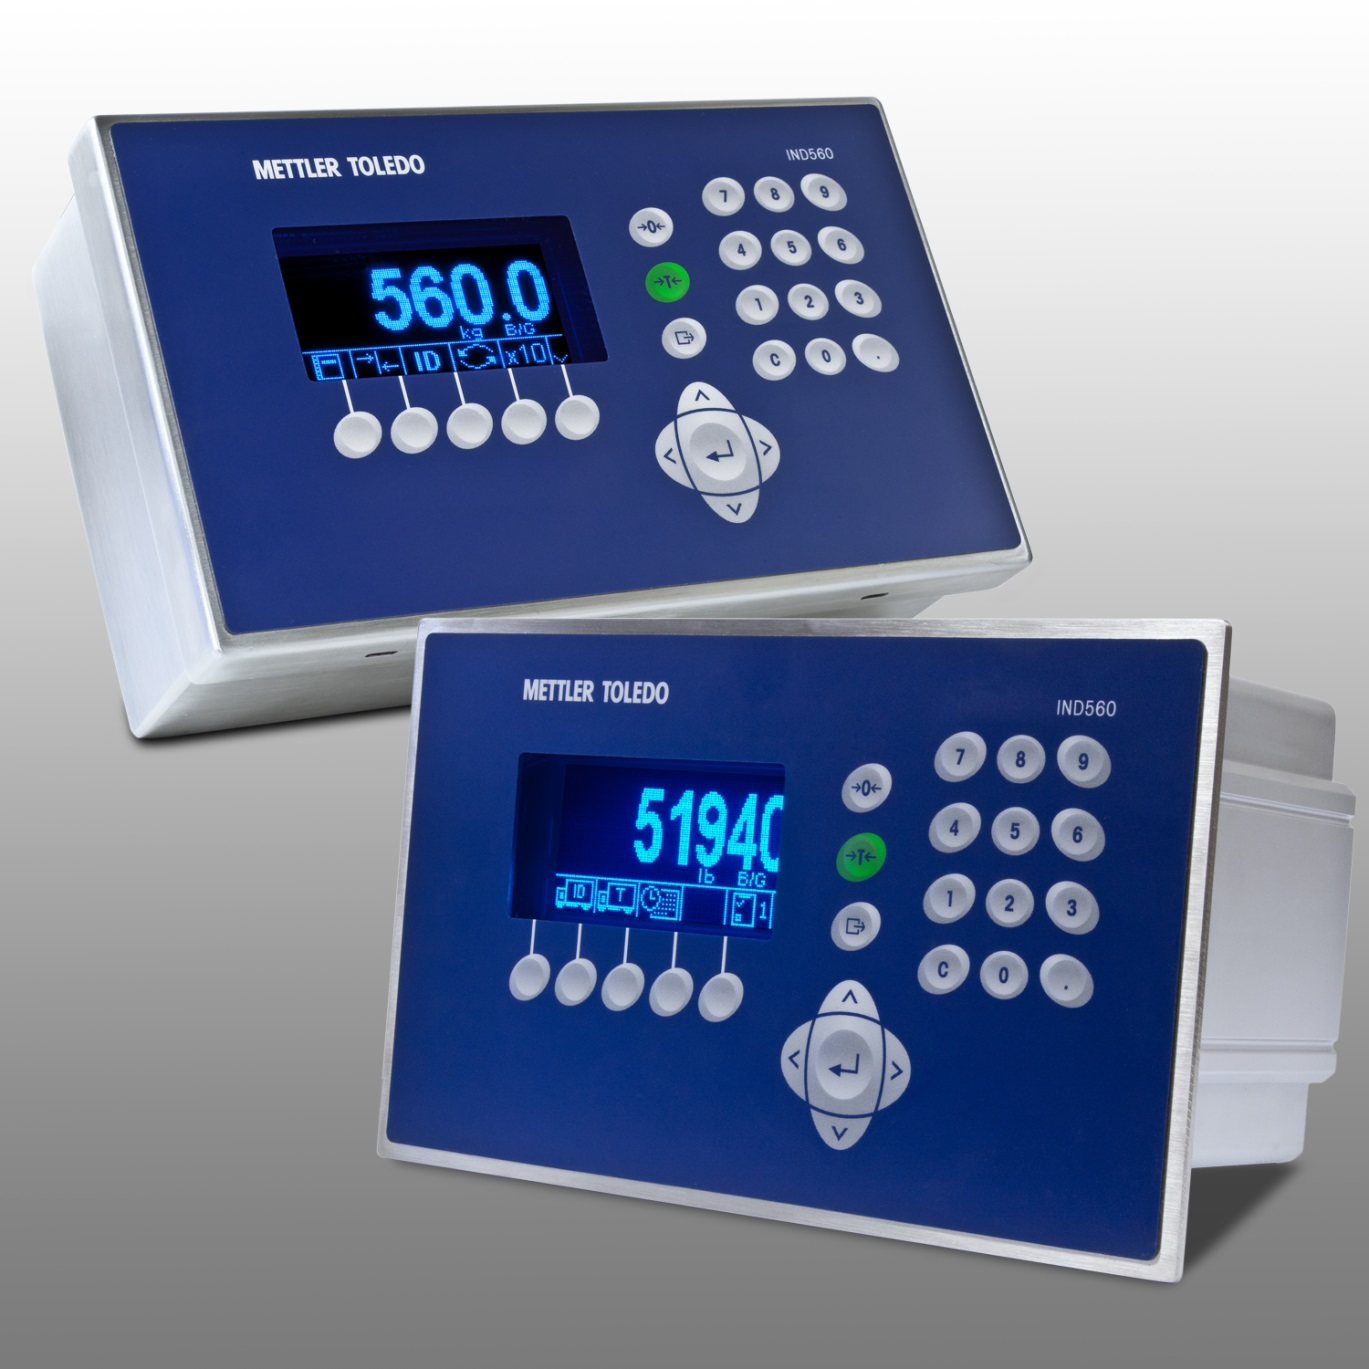 1 PLC Manual IND560 Weighing Terminal